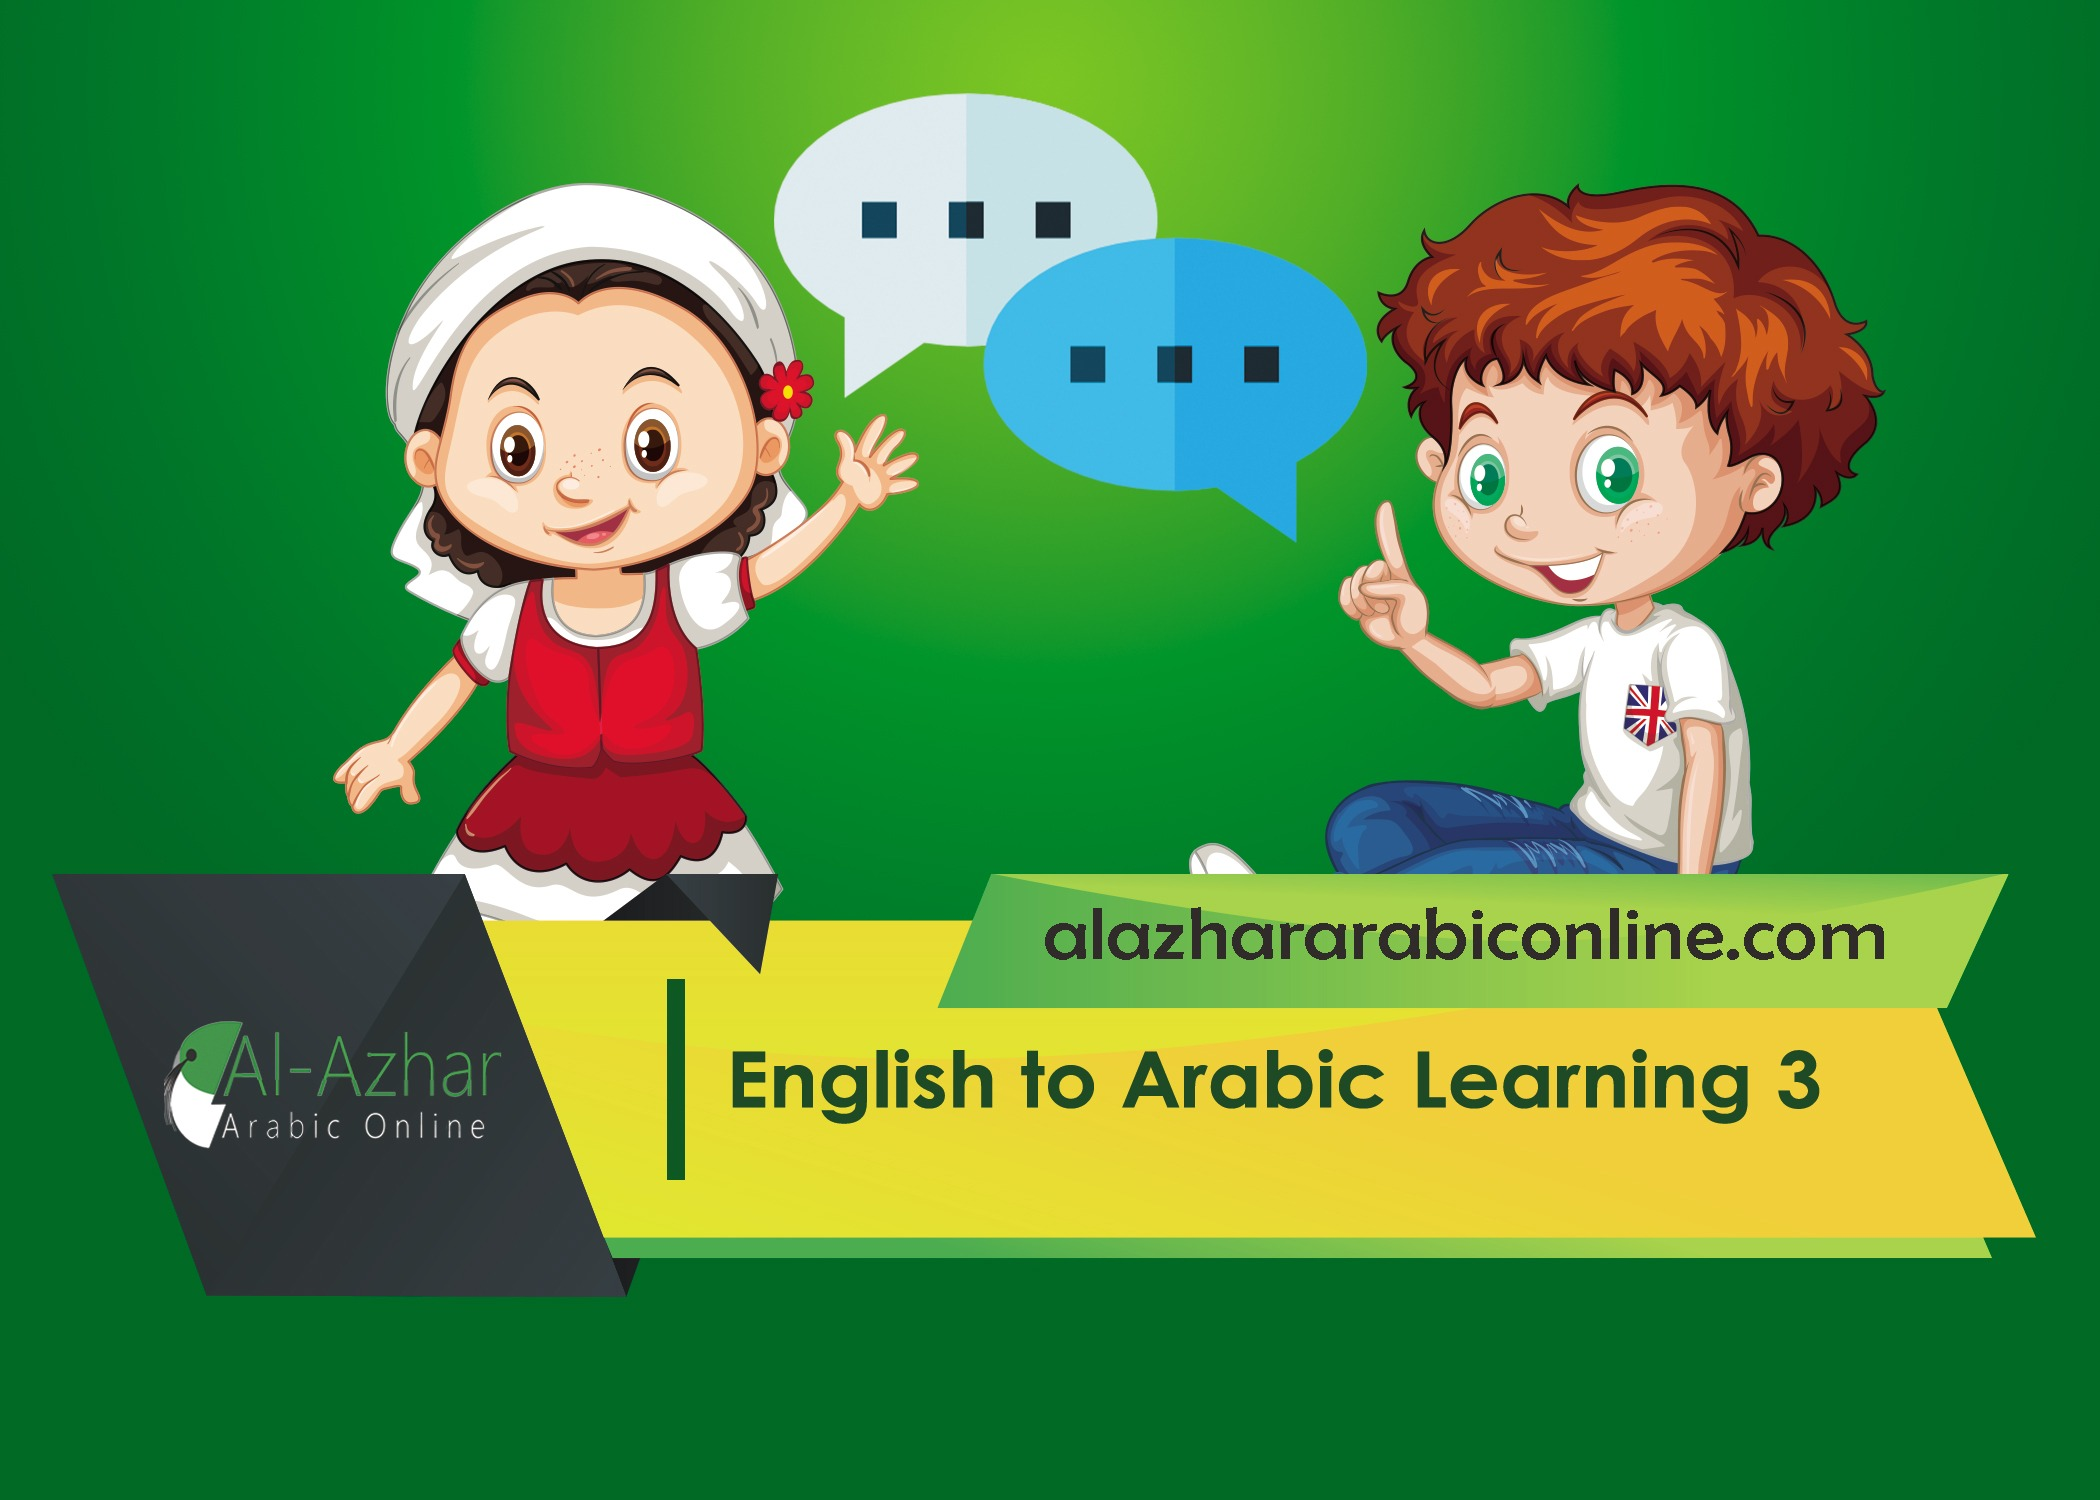 Arabic English learning courses English to Arabic Learning 1 -